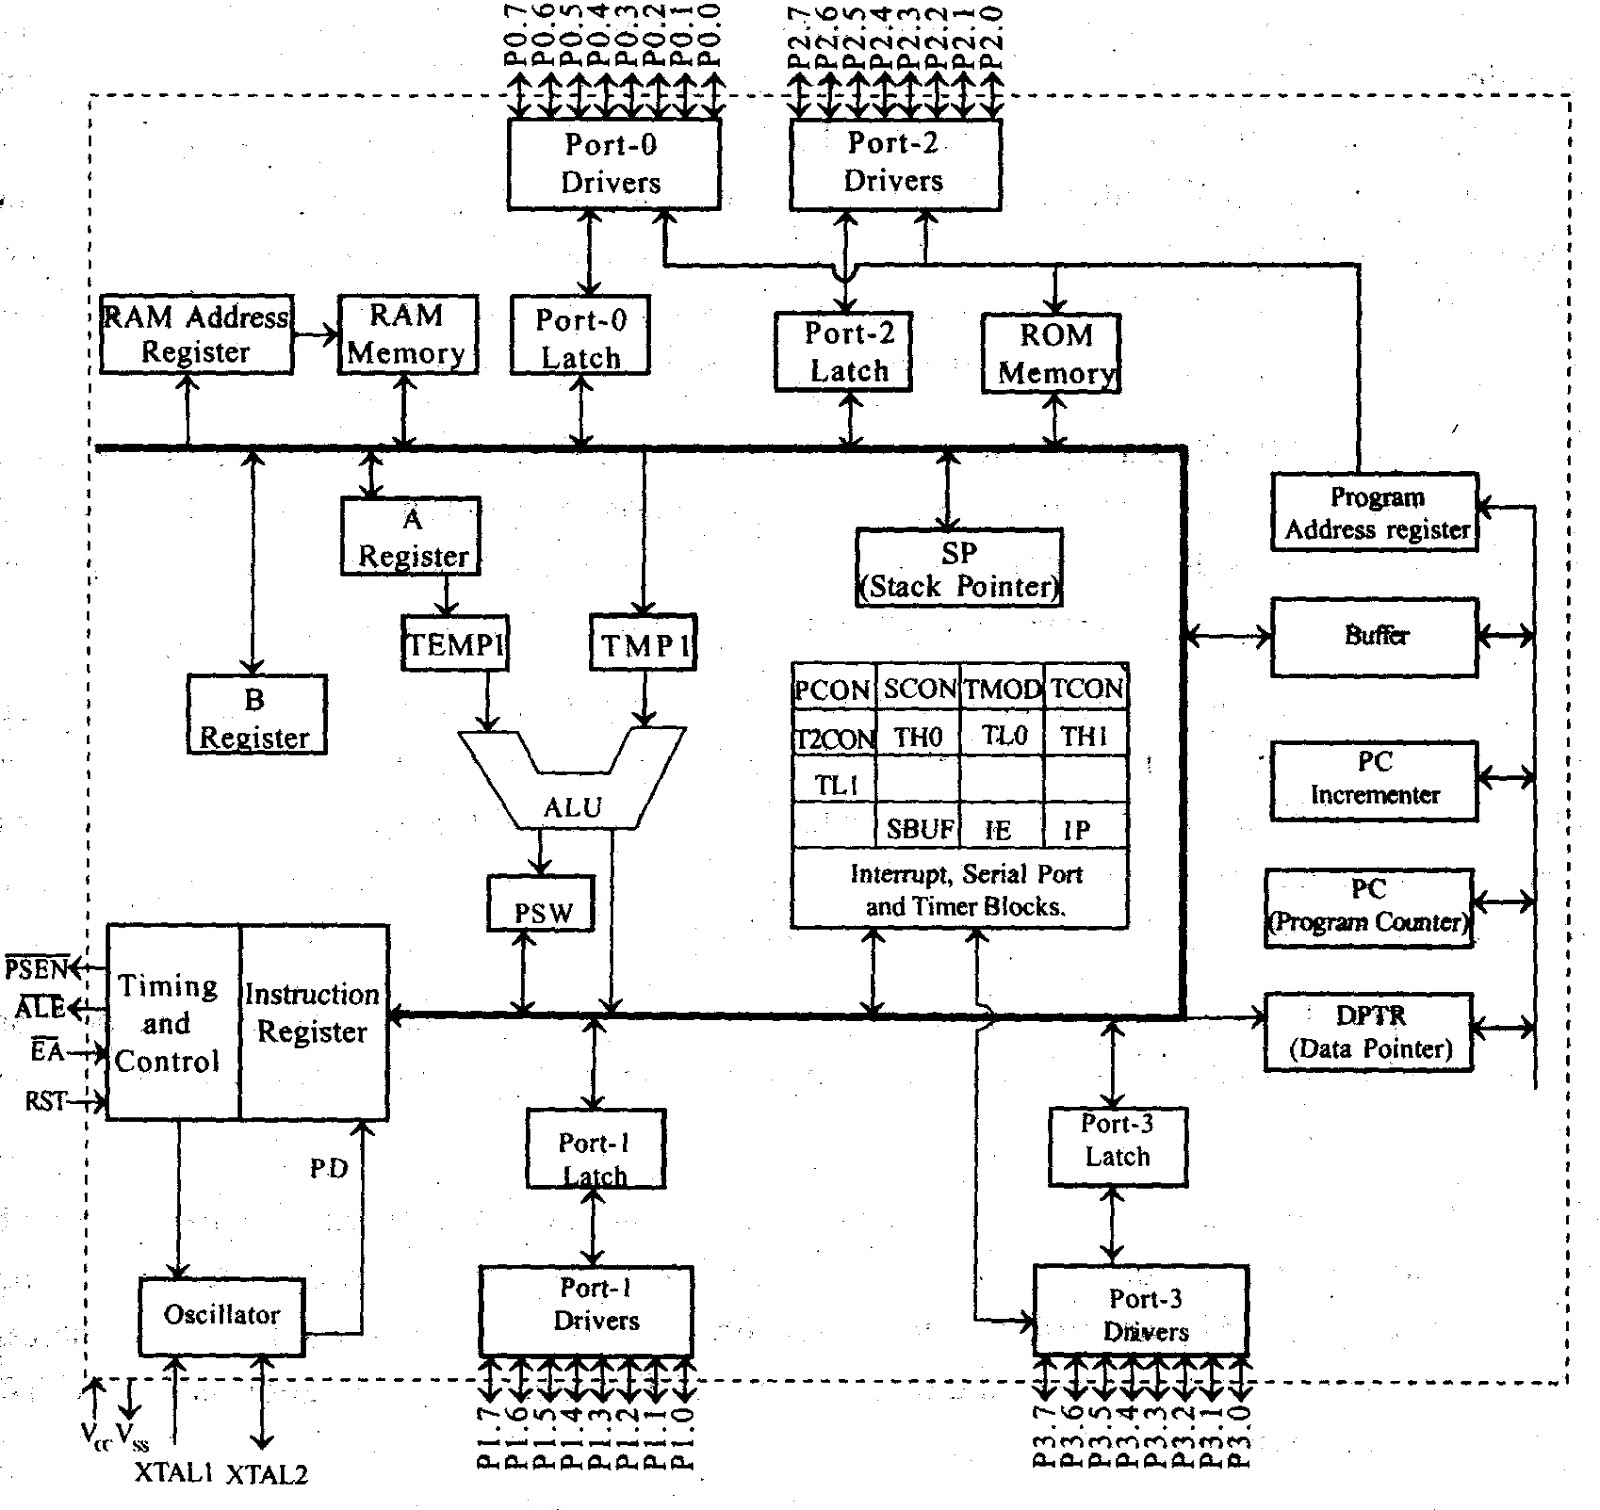 Logic Diagram Of 8 Bit Alu Auto Electrical Wiring Ripple Carry Adder Imgur Circuit A U0026quot Media To Get All Datas In Science